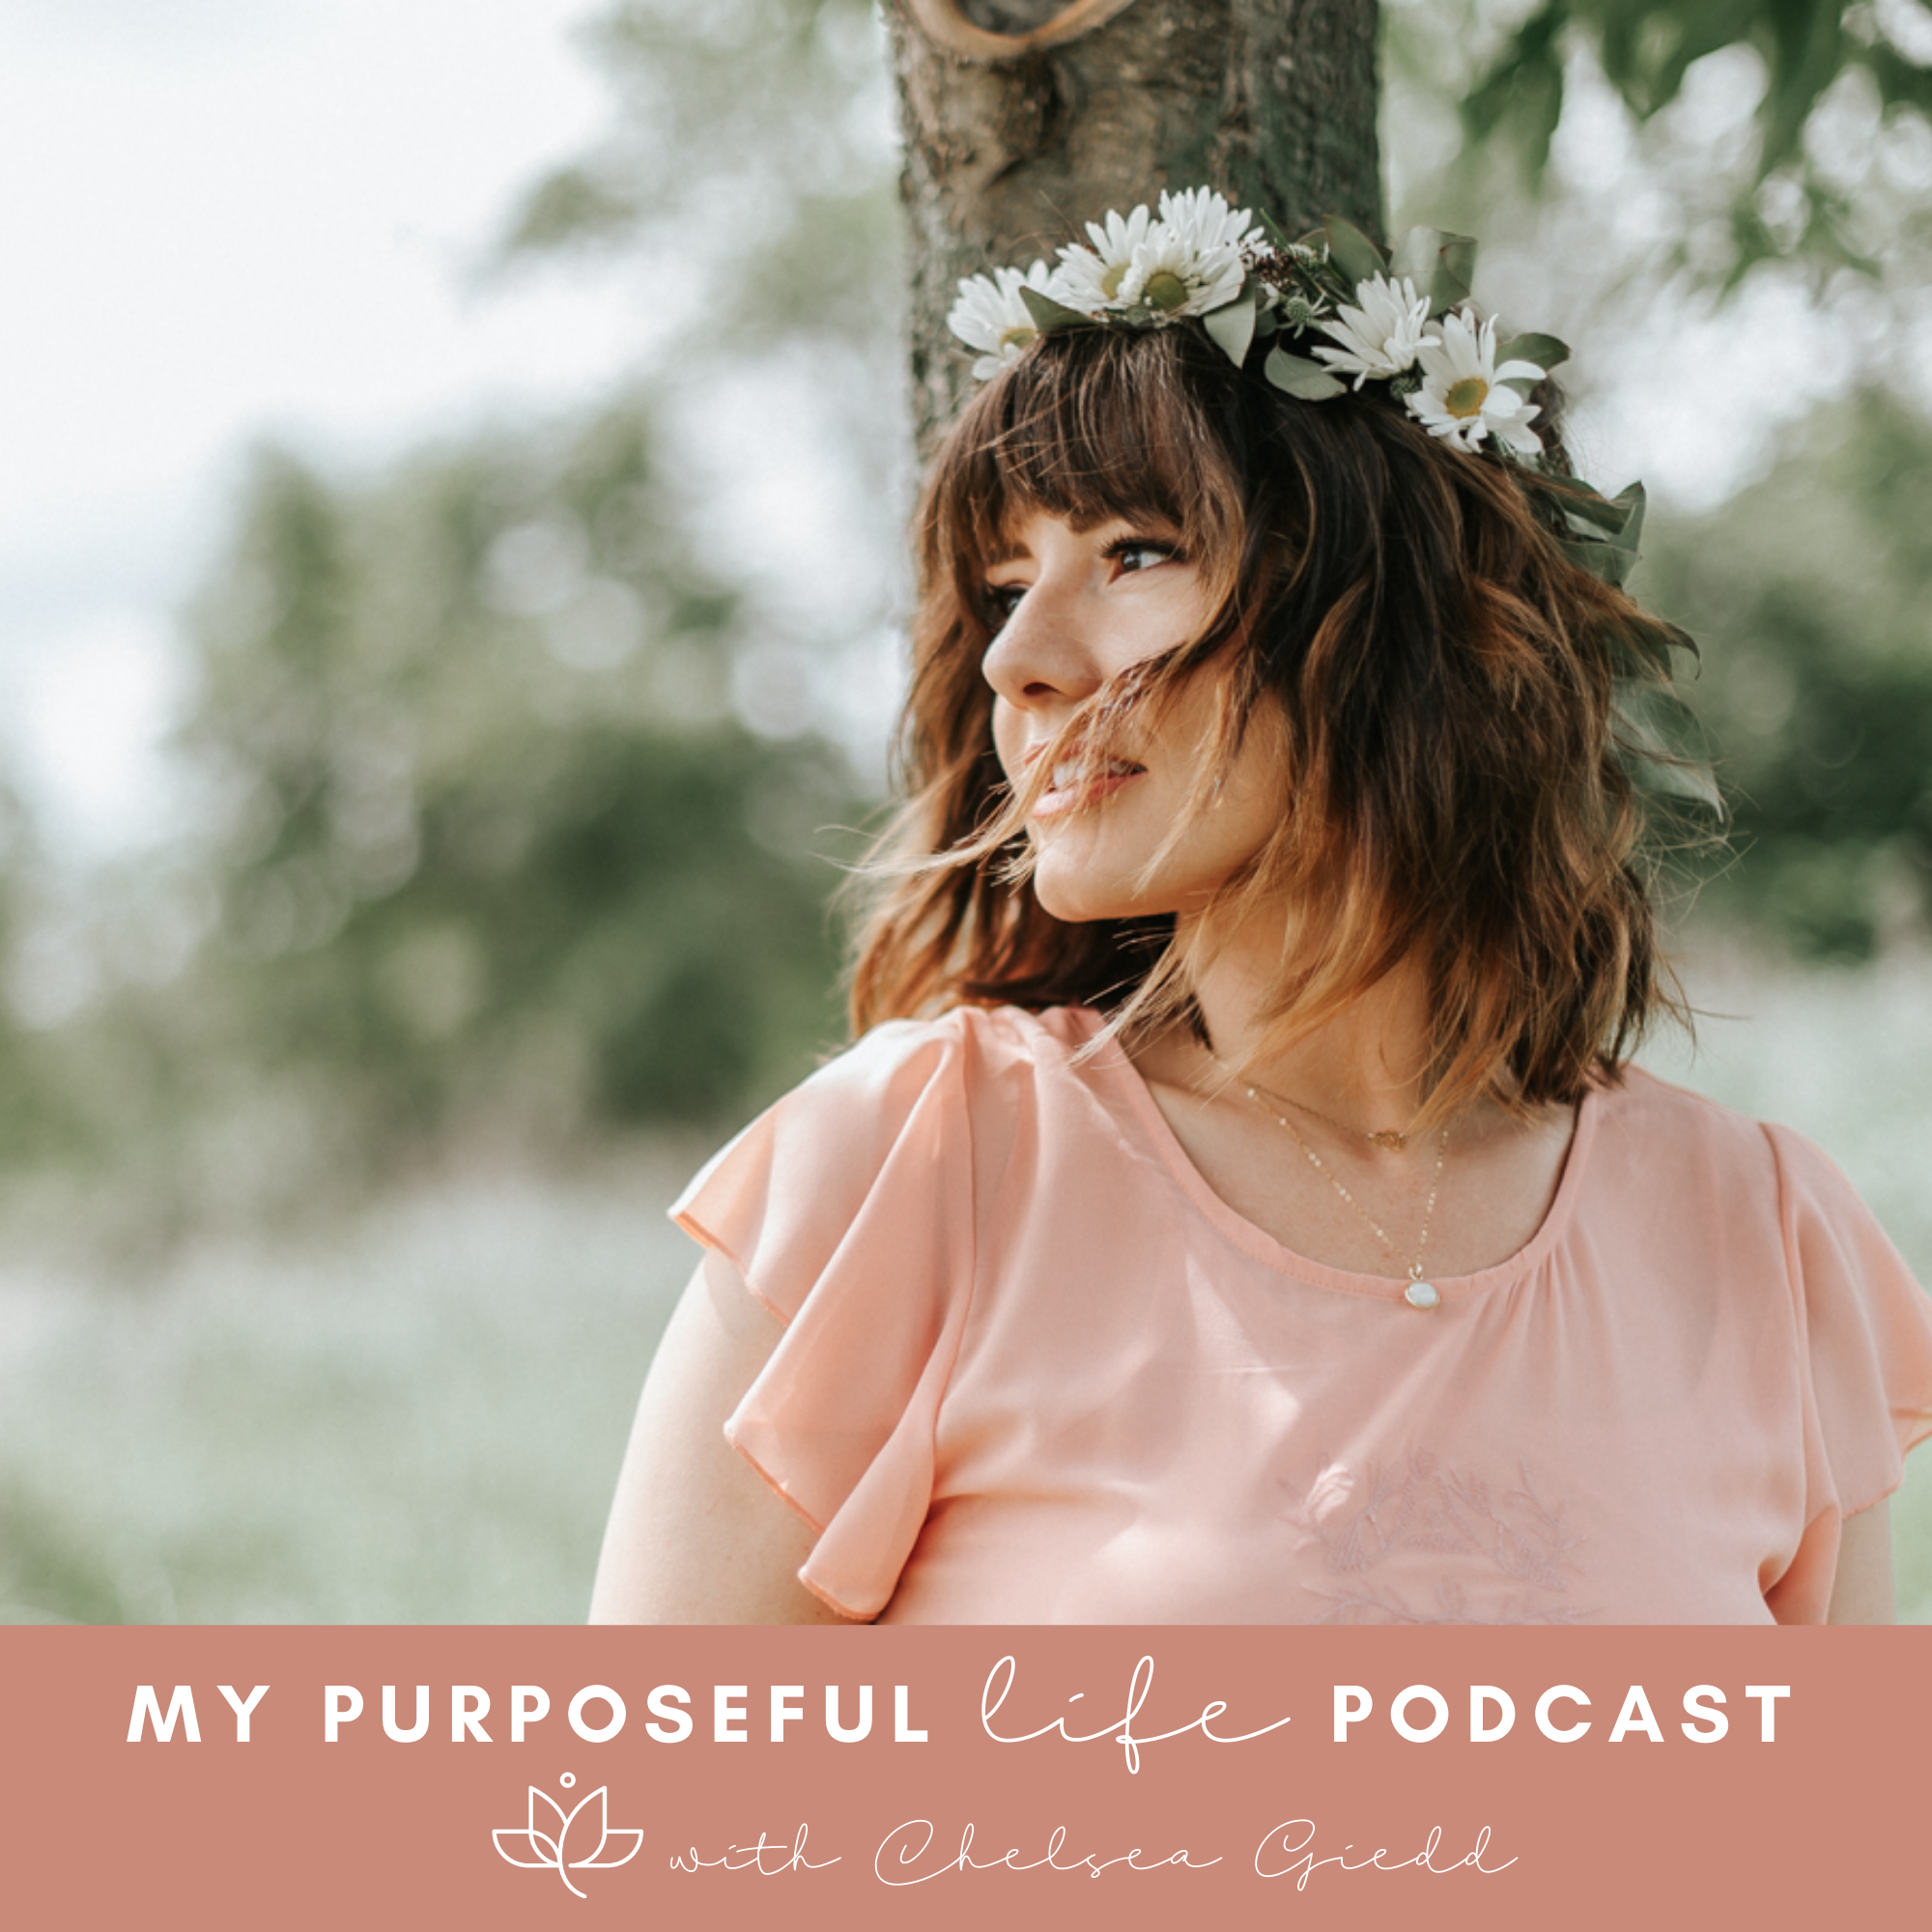 My Purposeful Life Podcast show art